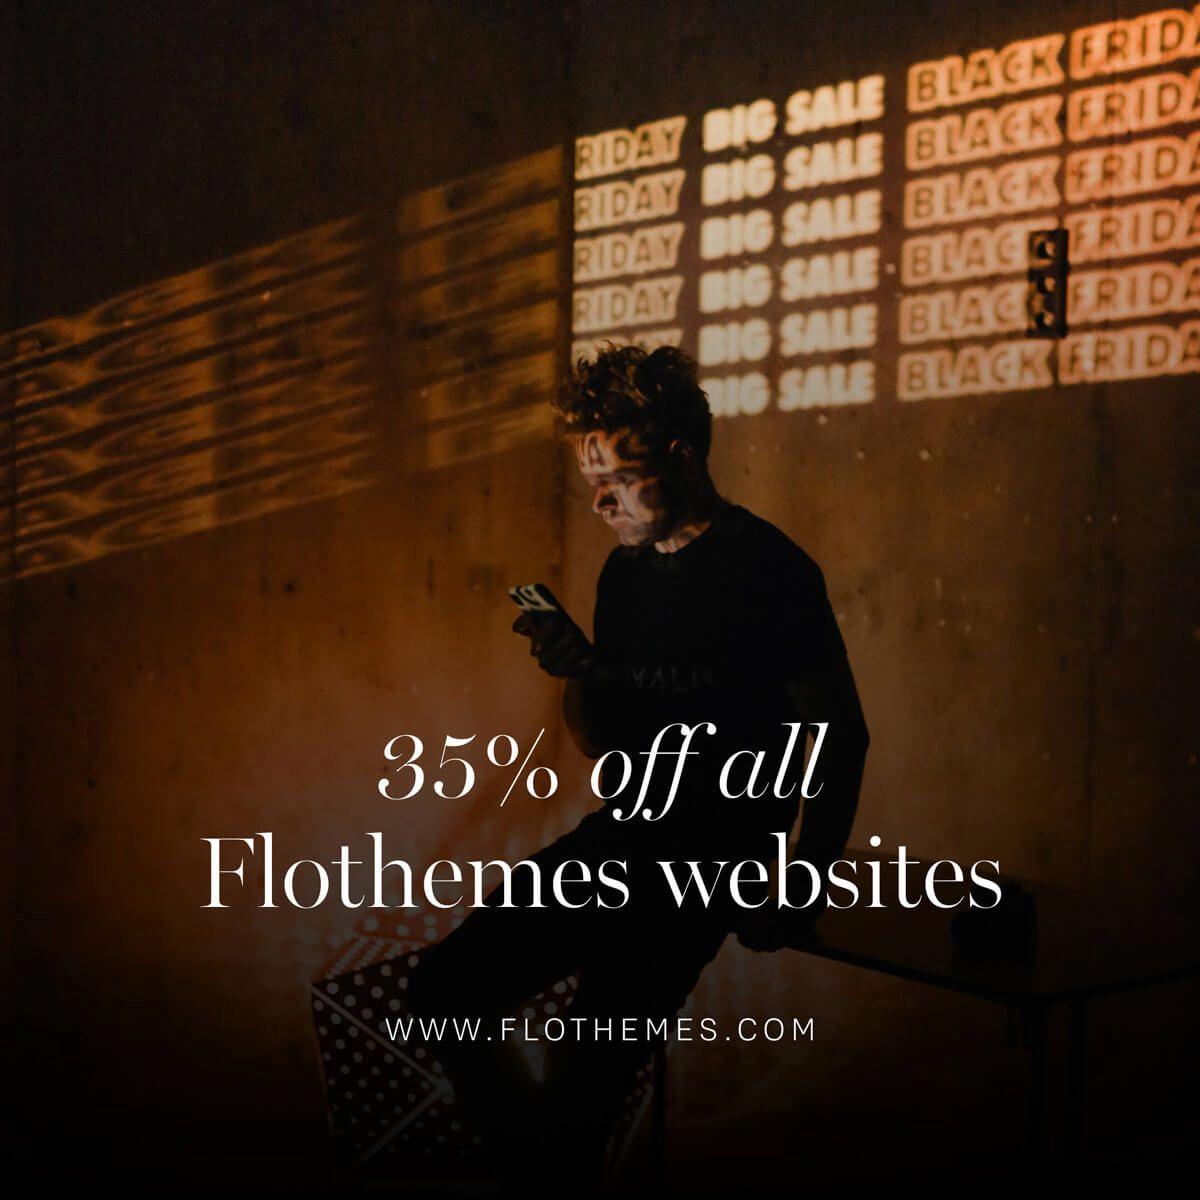 alt text for image: an image of a white man with brown hair sitting on a bench holding a phone. The words 'Big Sale Black Friday' are projected on the wall behind him. There is text overlaying the photo, which reads '35% off all Flothemes websites. www.flothemes.com'.